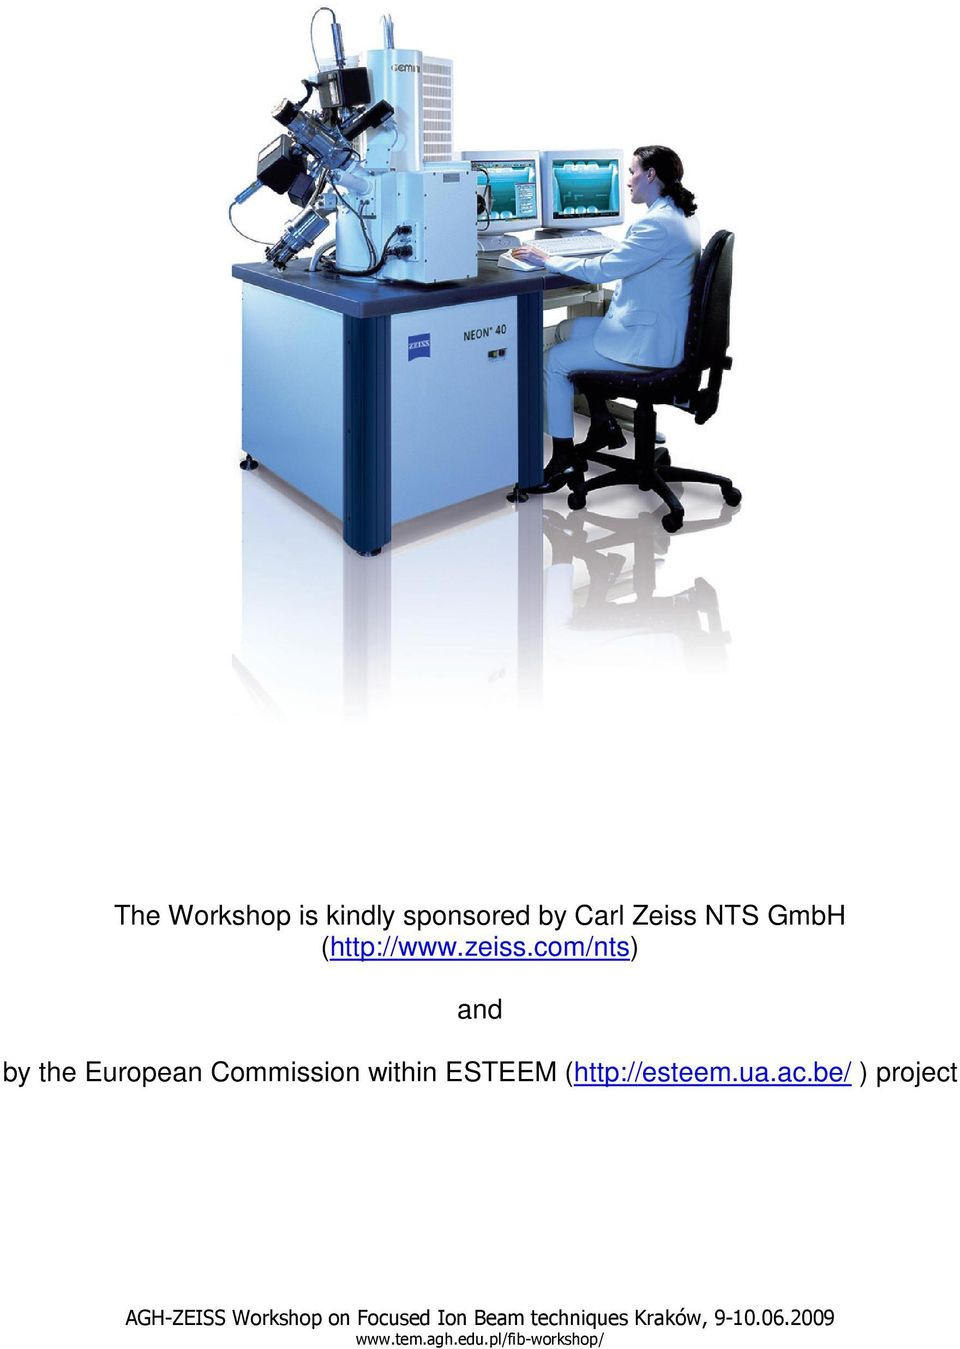 com/nts) and by the European Commission